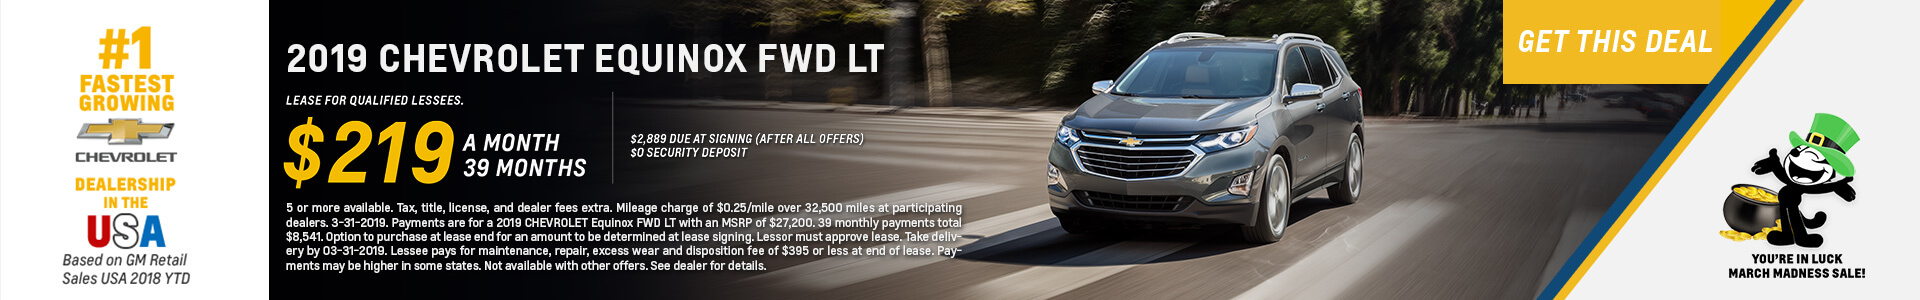 Chevrolet Equinox $219 Lease